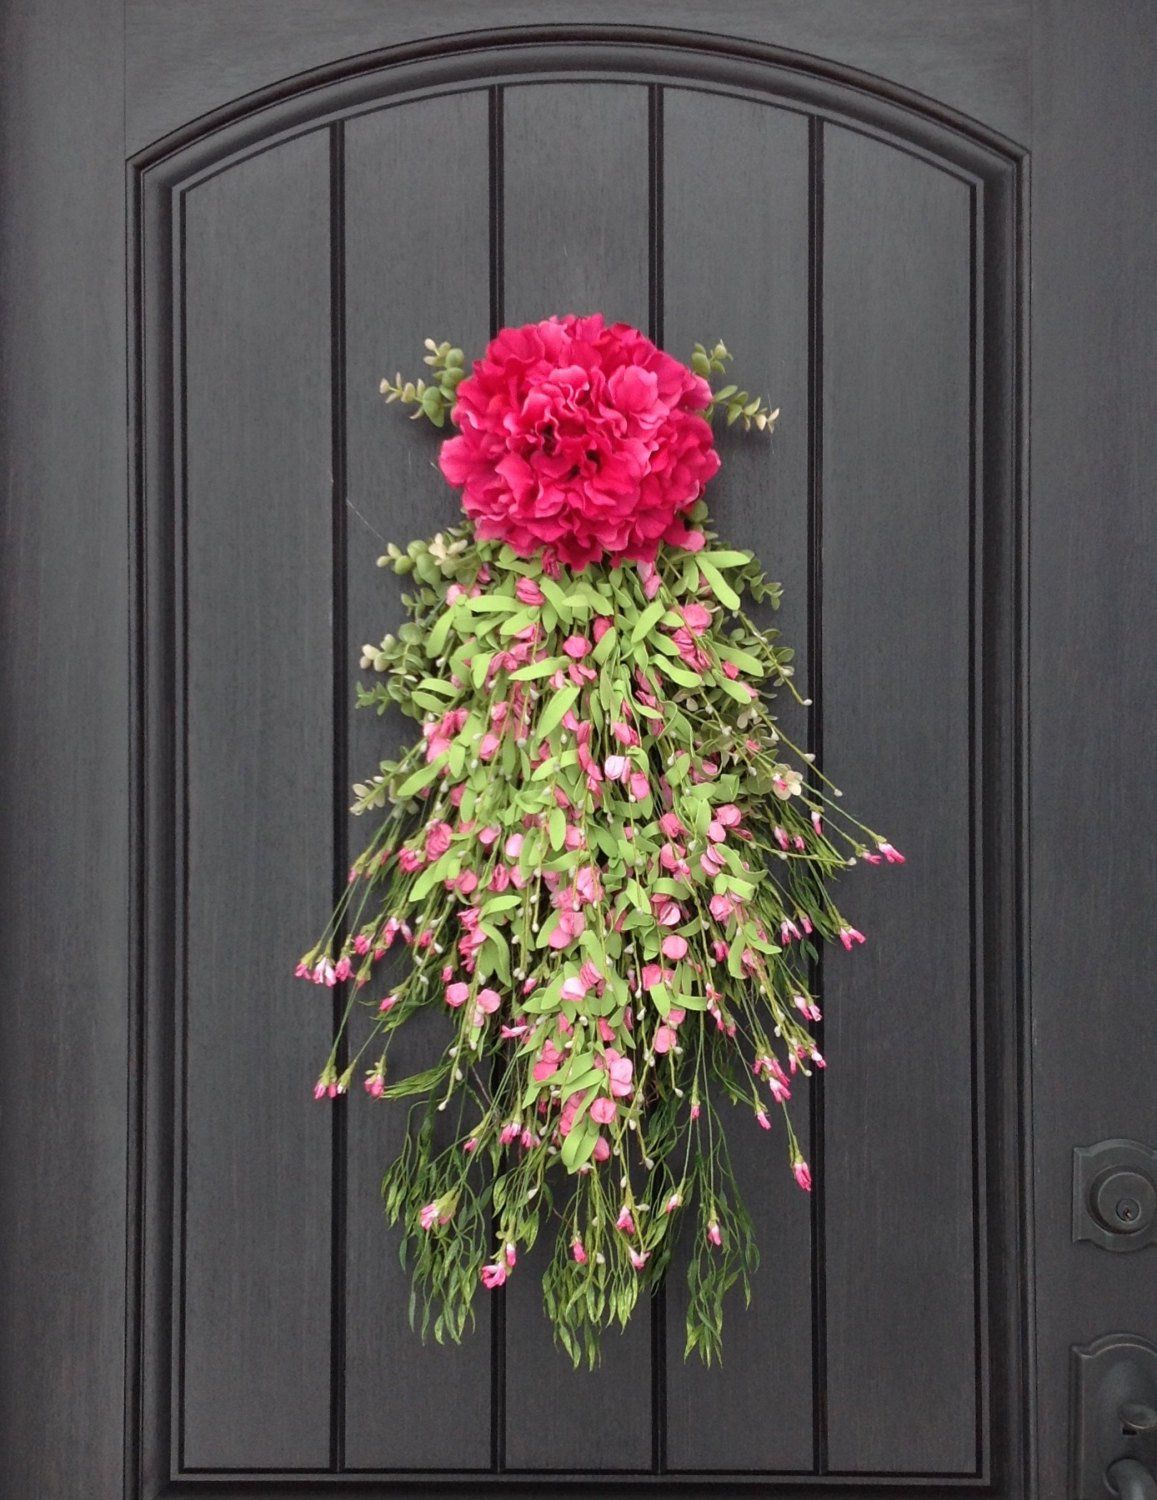 15 Joyful Handmade Spring Wreath Ideas To Decorate Your Front Door